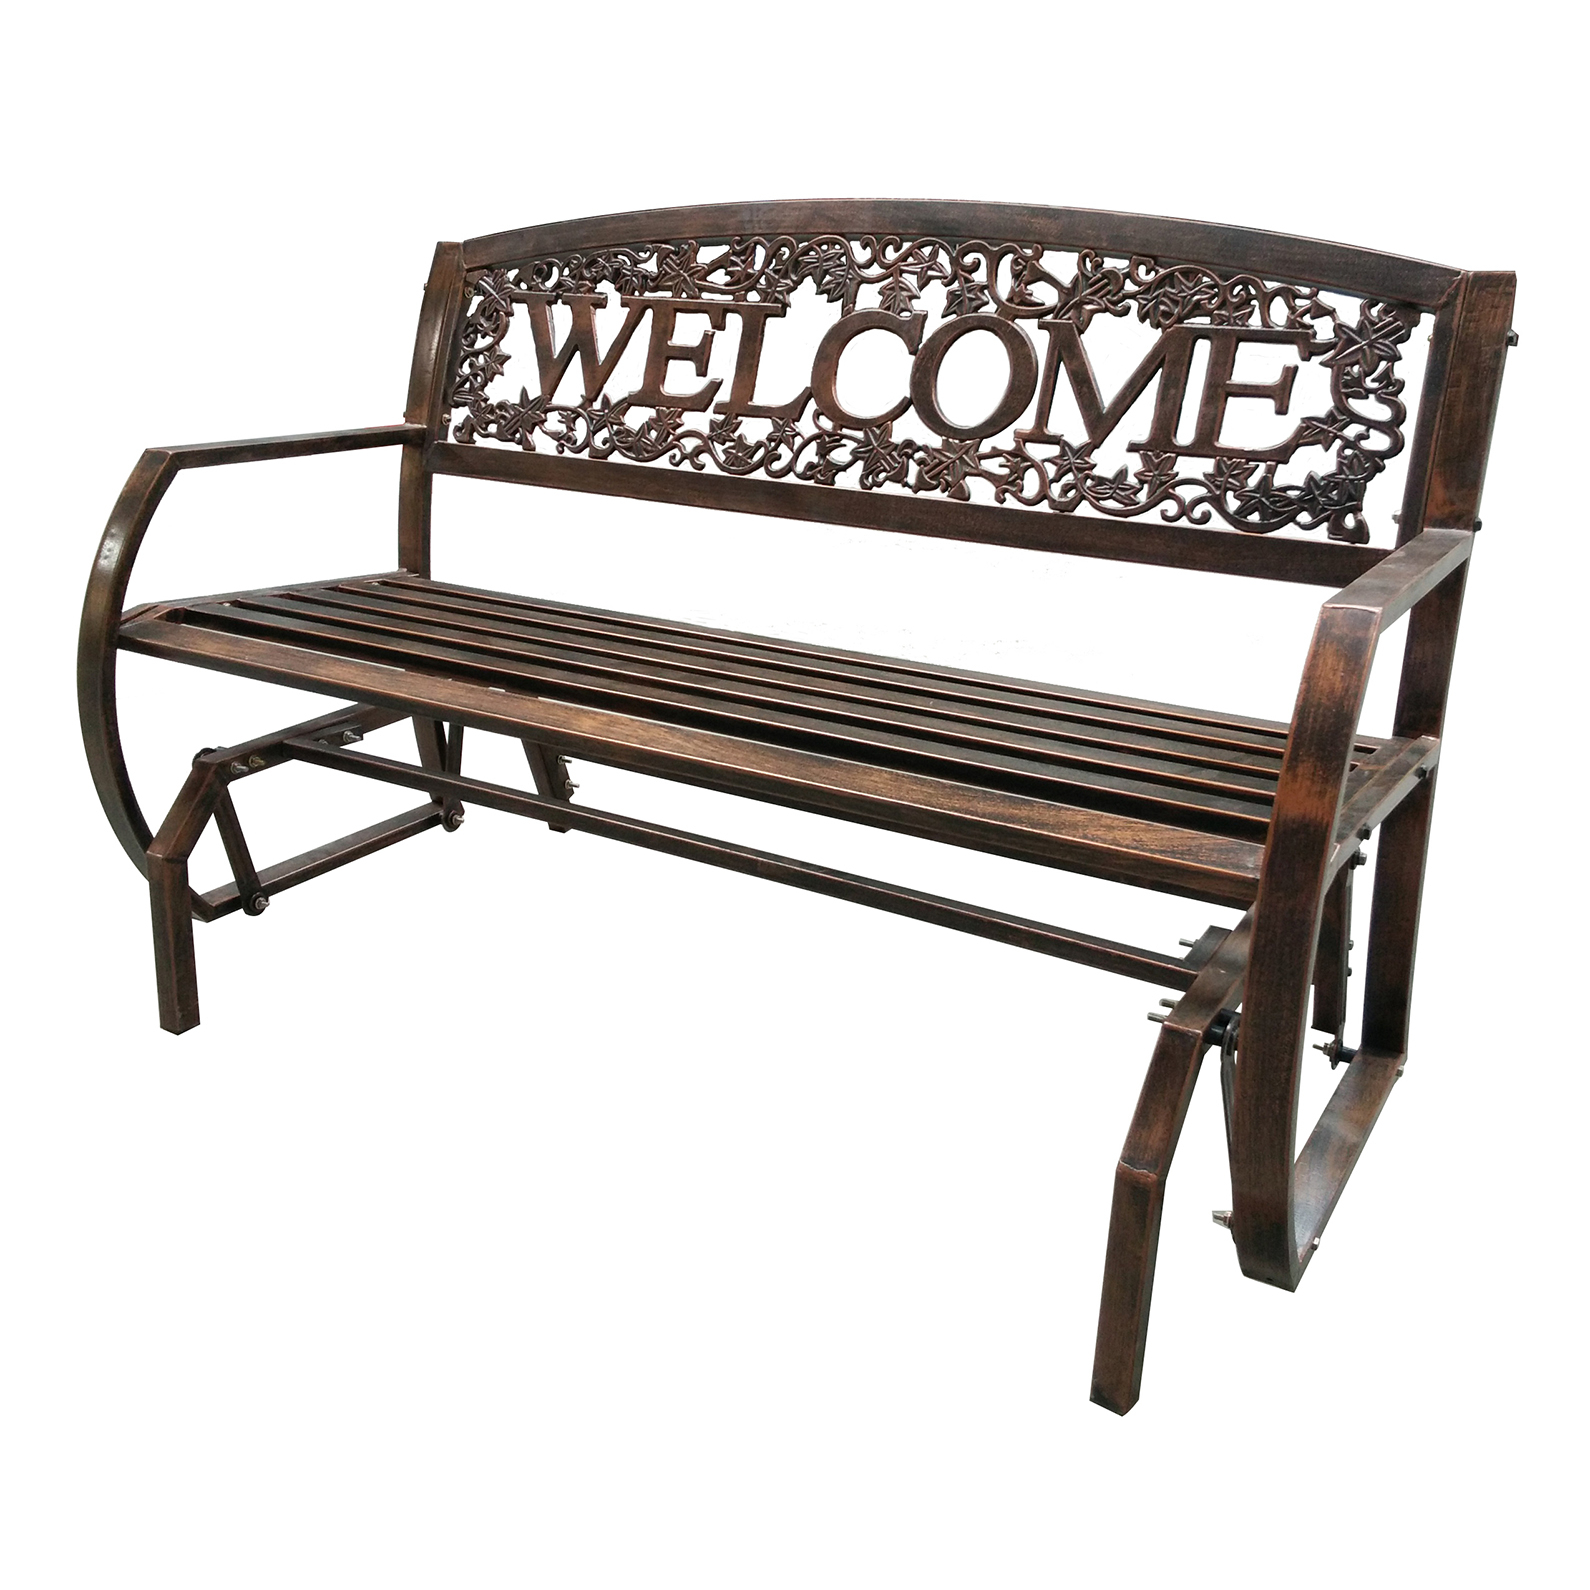 "Lehigh Country TX94062 50.4"" X 27"" X 34.1"" Powder Coated Welcome Double Glider"